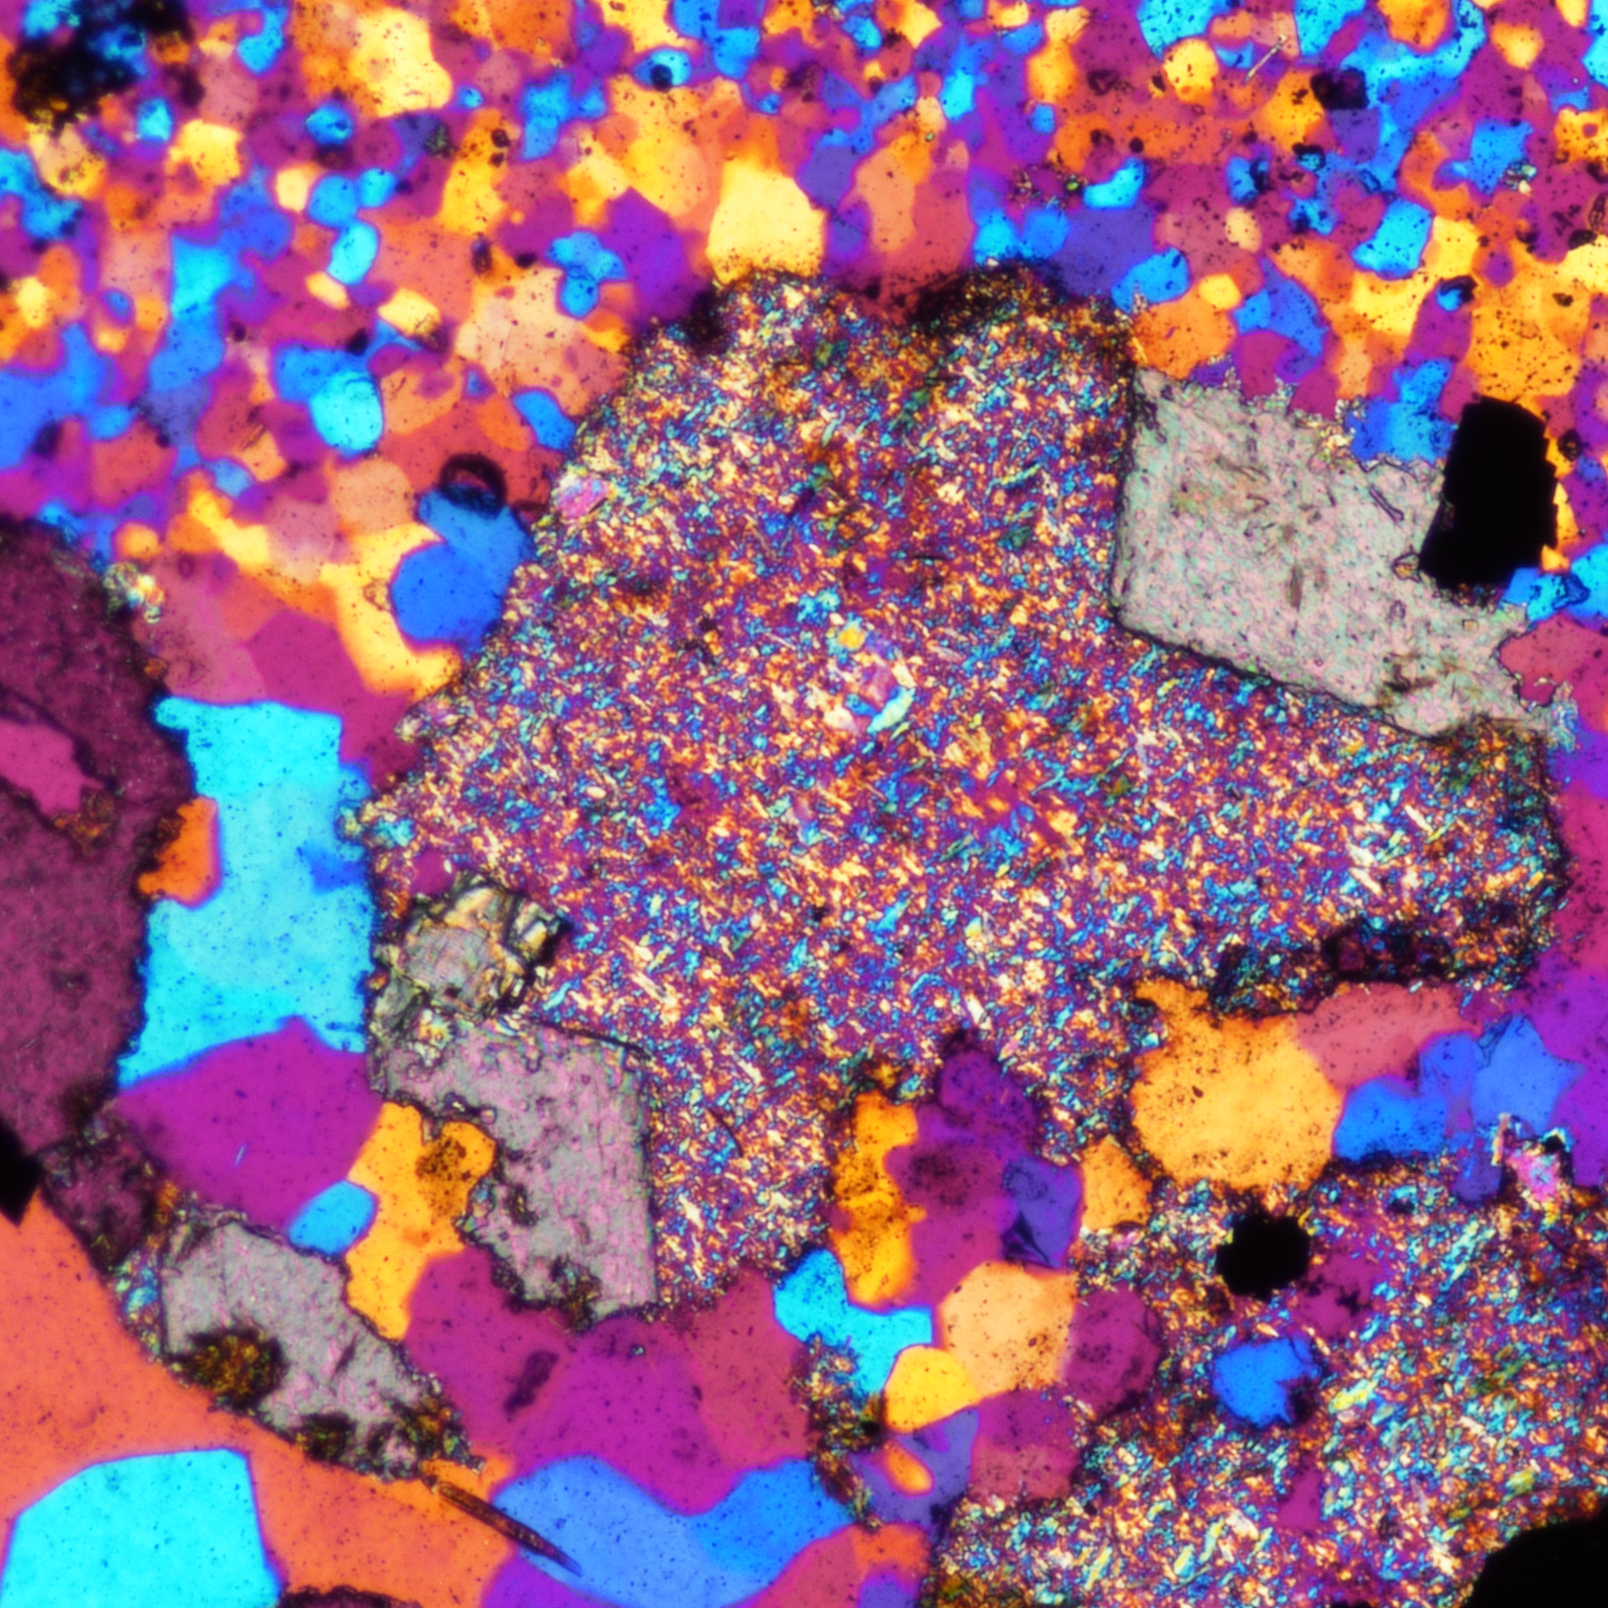 Granular iron formation thin section image